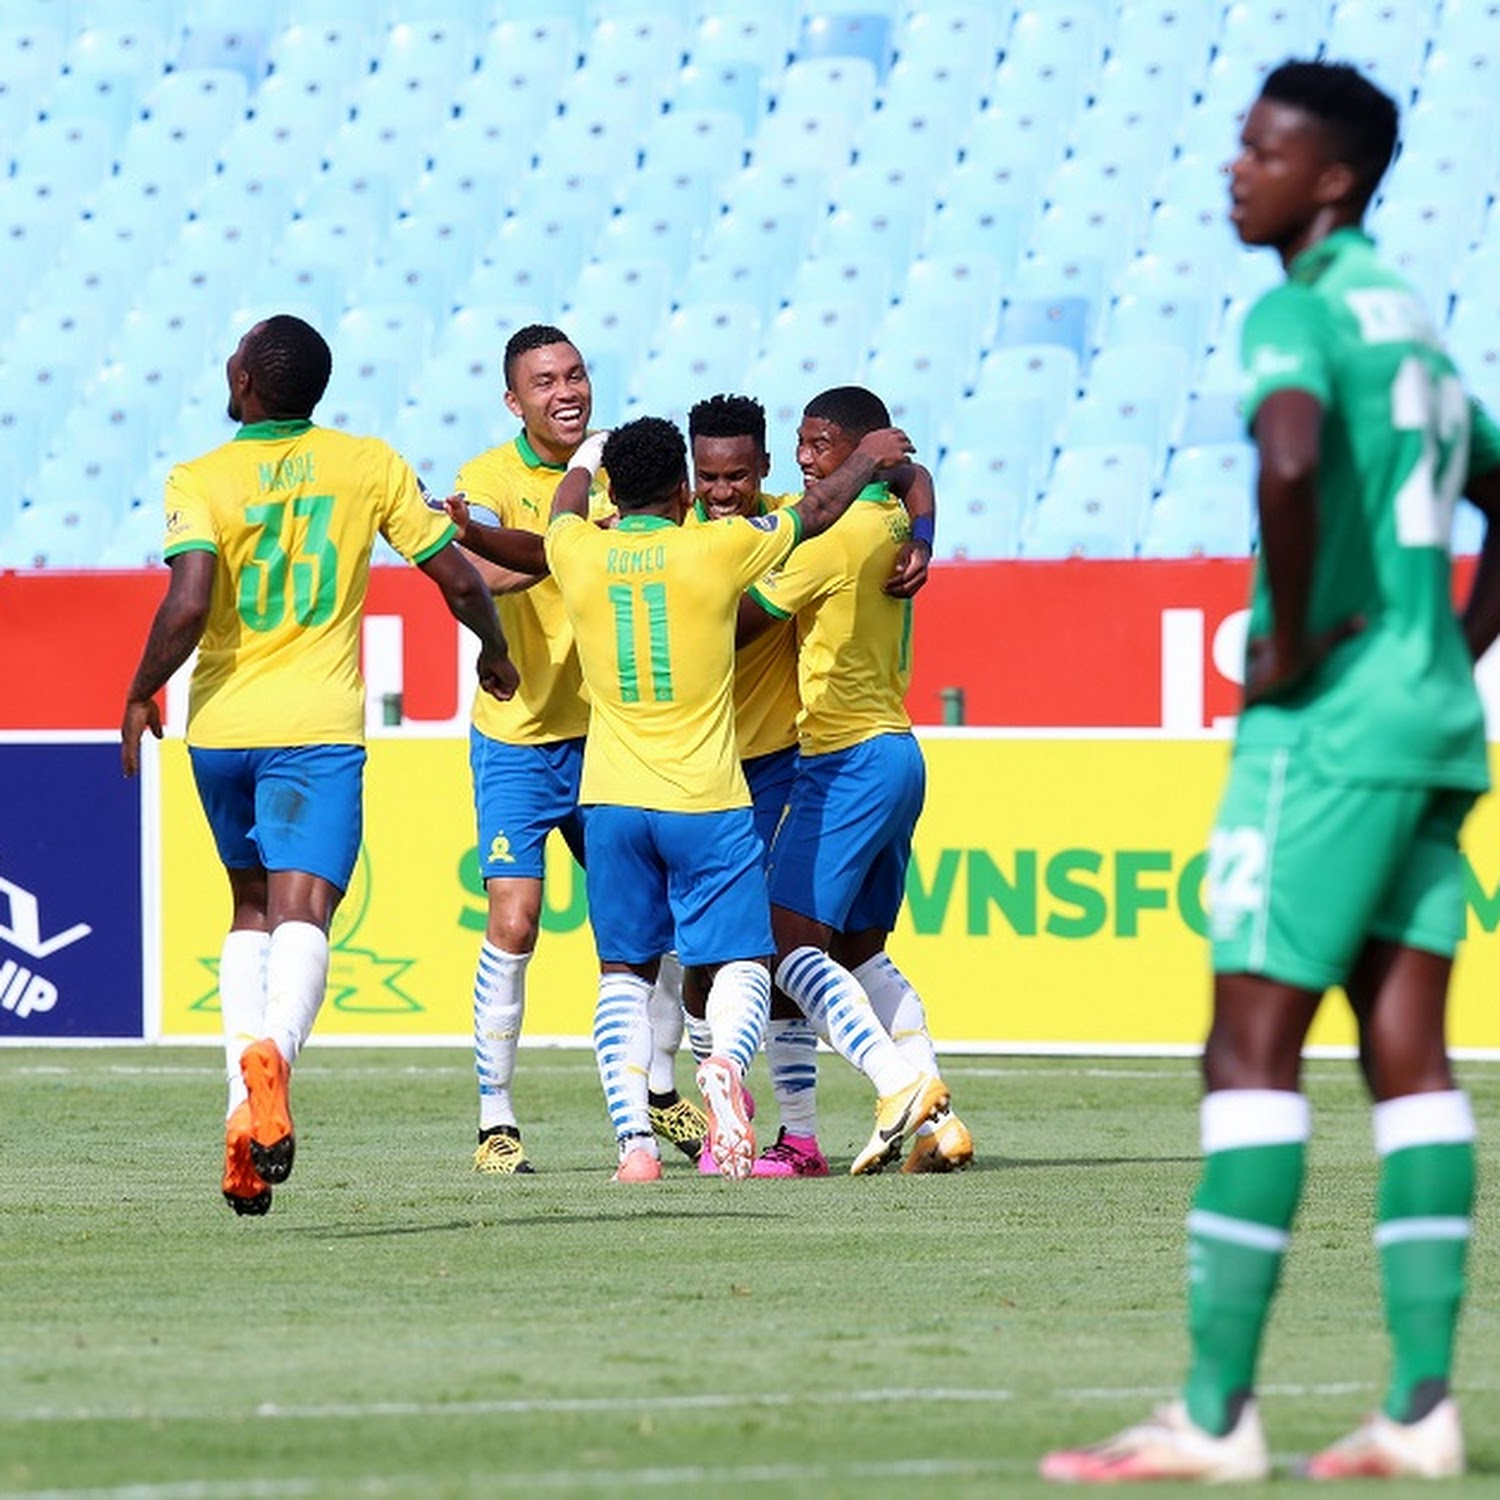 Sundowns Pay Fitting Tribute To Anele Ngcongca With Clinical Victory Over Stellenbosch